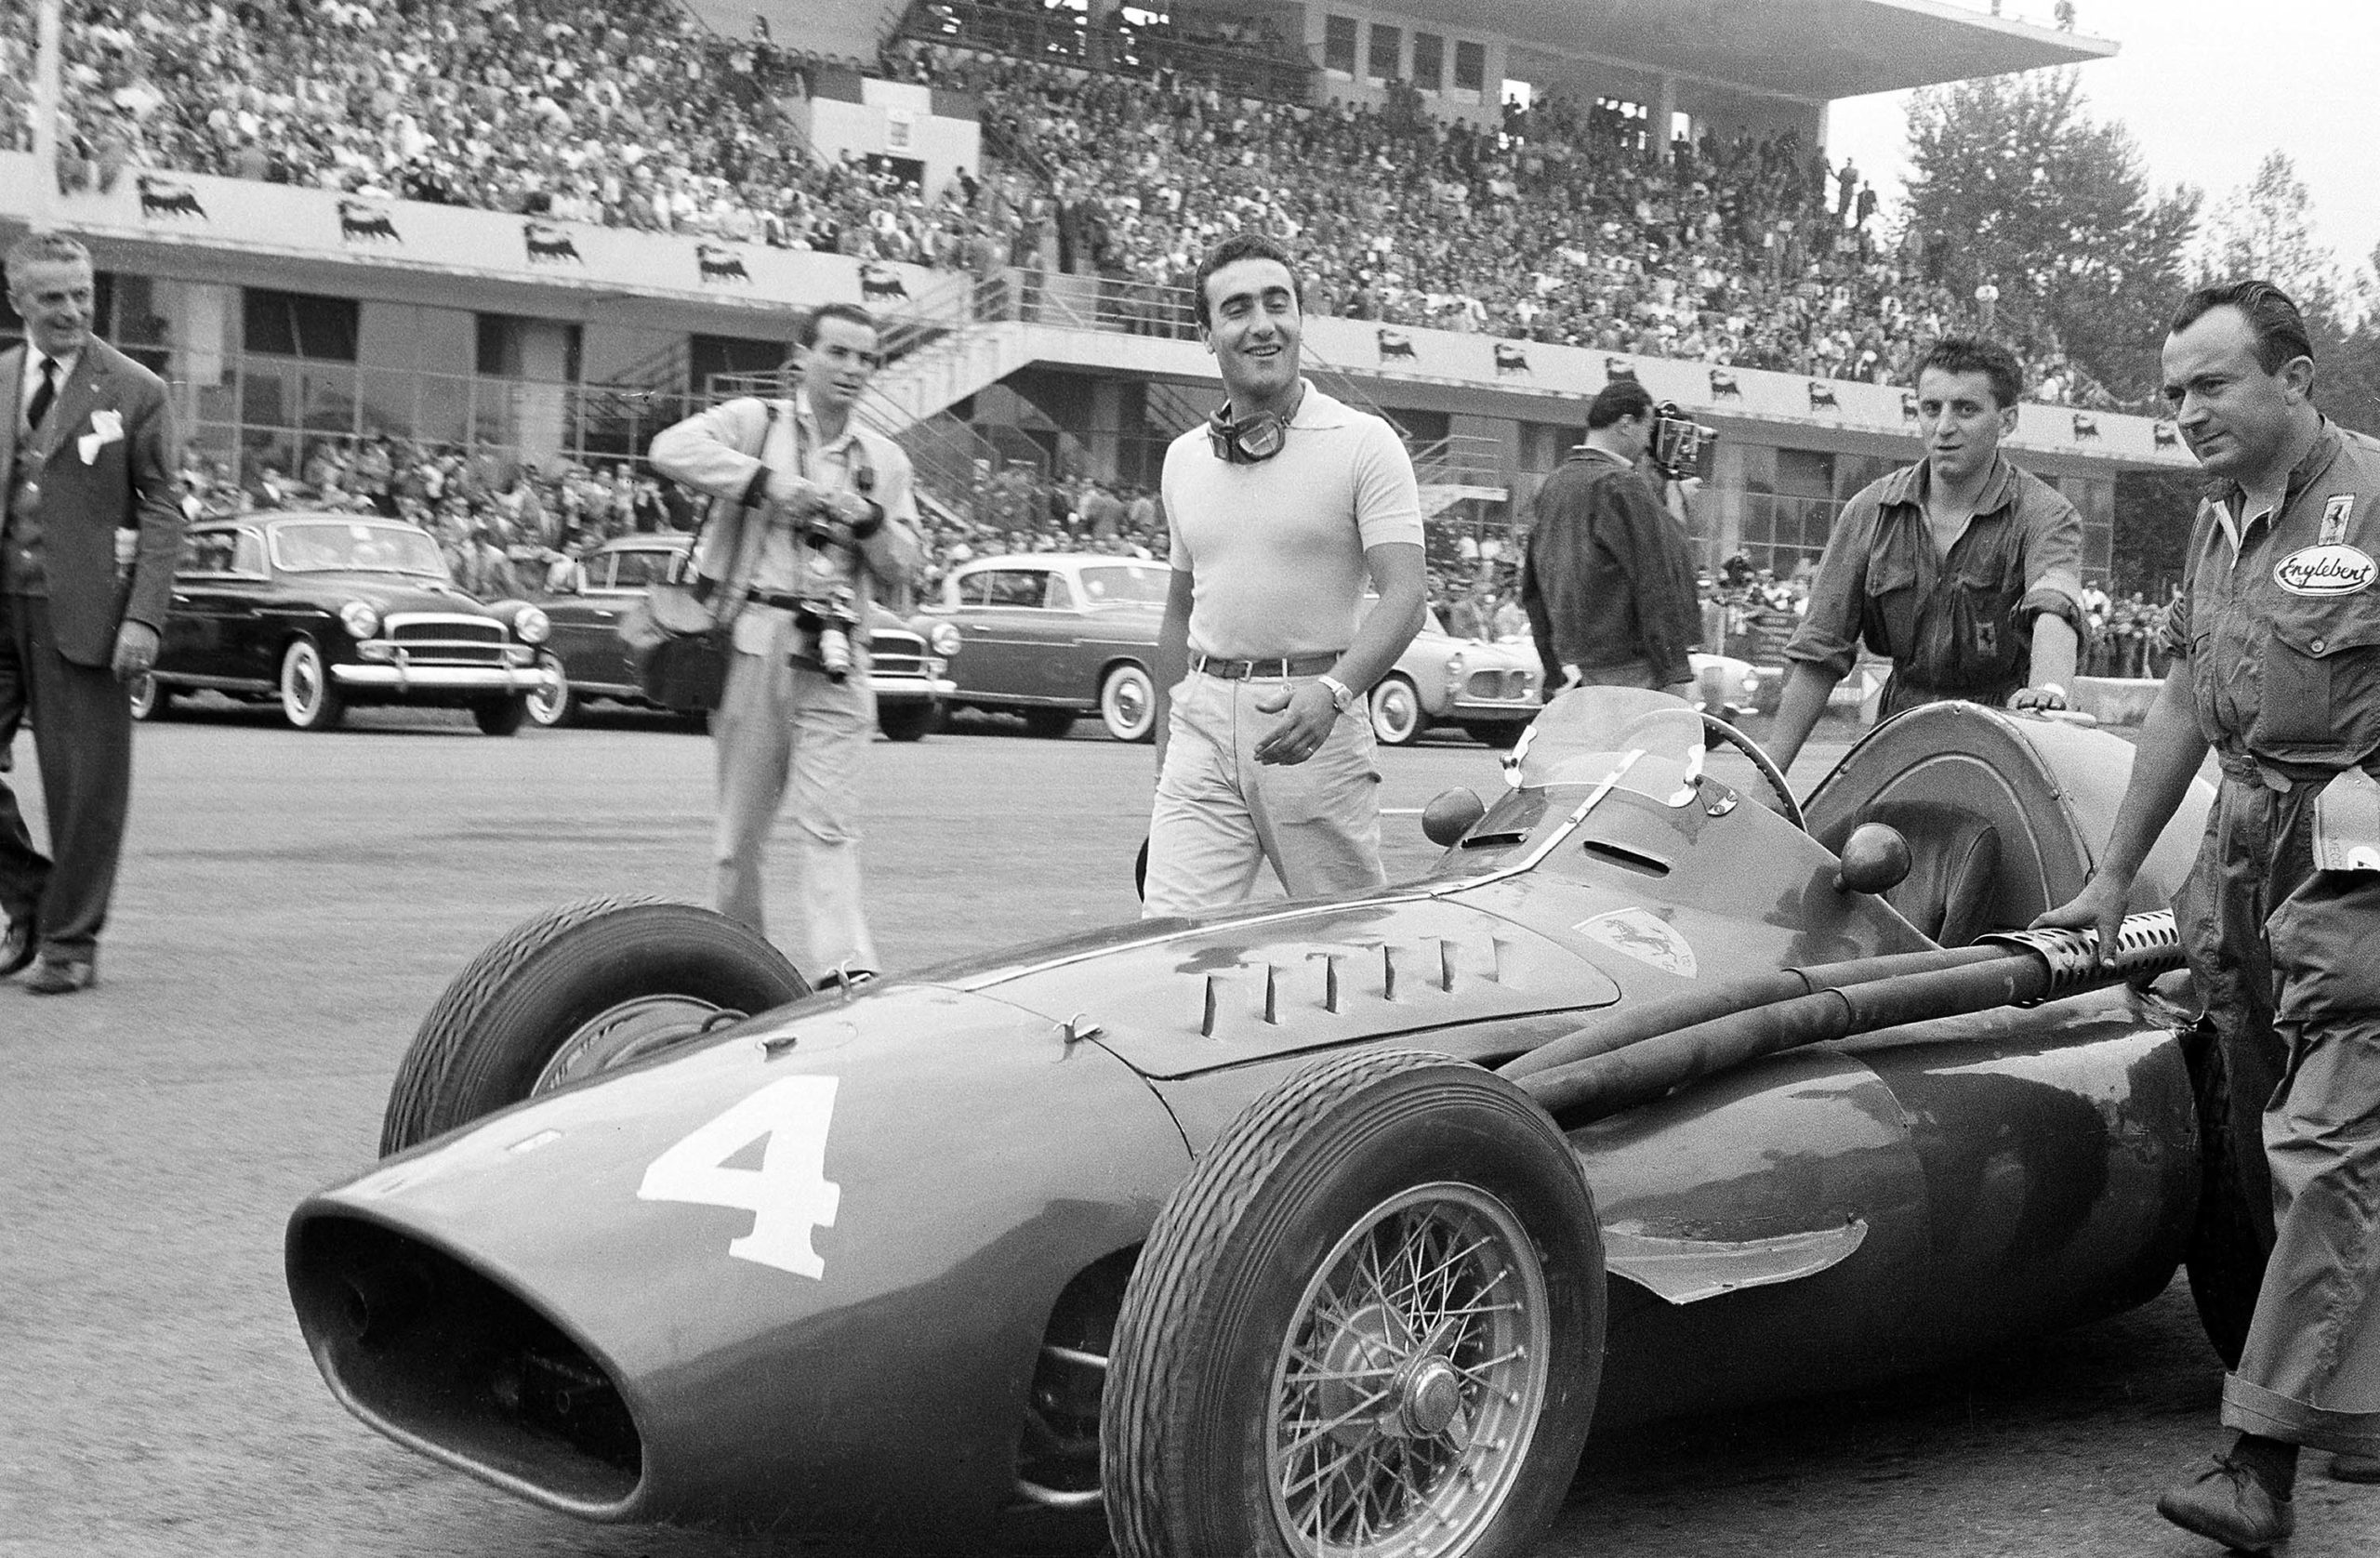 Racing driver Eugenio Castellotti with his Ferrari 'Squalo' walking to the grid before the start of the Italian Grand Prix at Monza, 11th September 1955. The man with all the cameras is the well-known photo-journalist Bernard Cahier. (Photo by Klemantaski Collection/Getty Images)